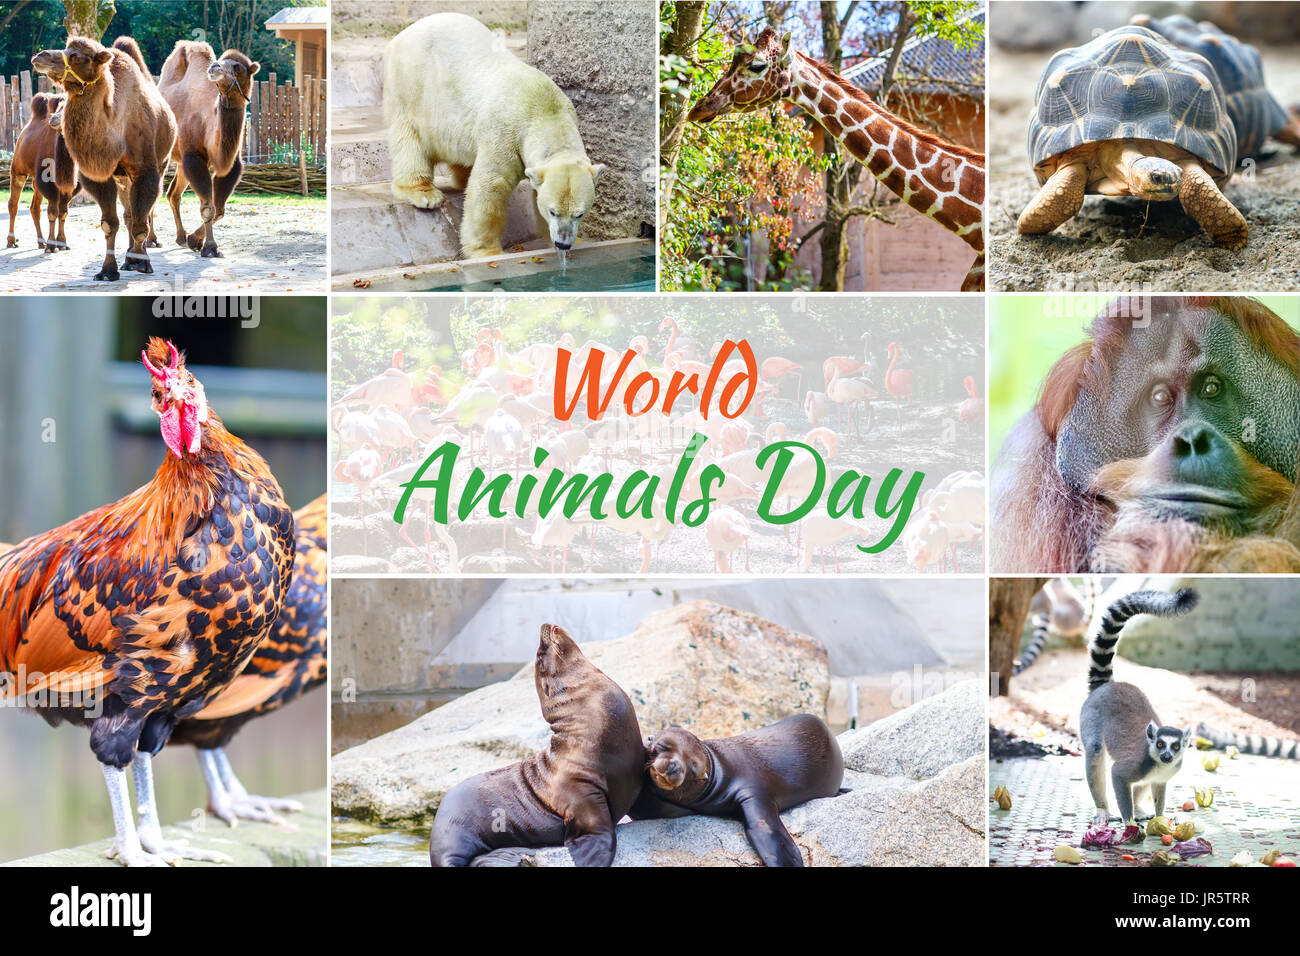 World Animal Day - Stock Image